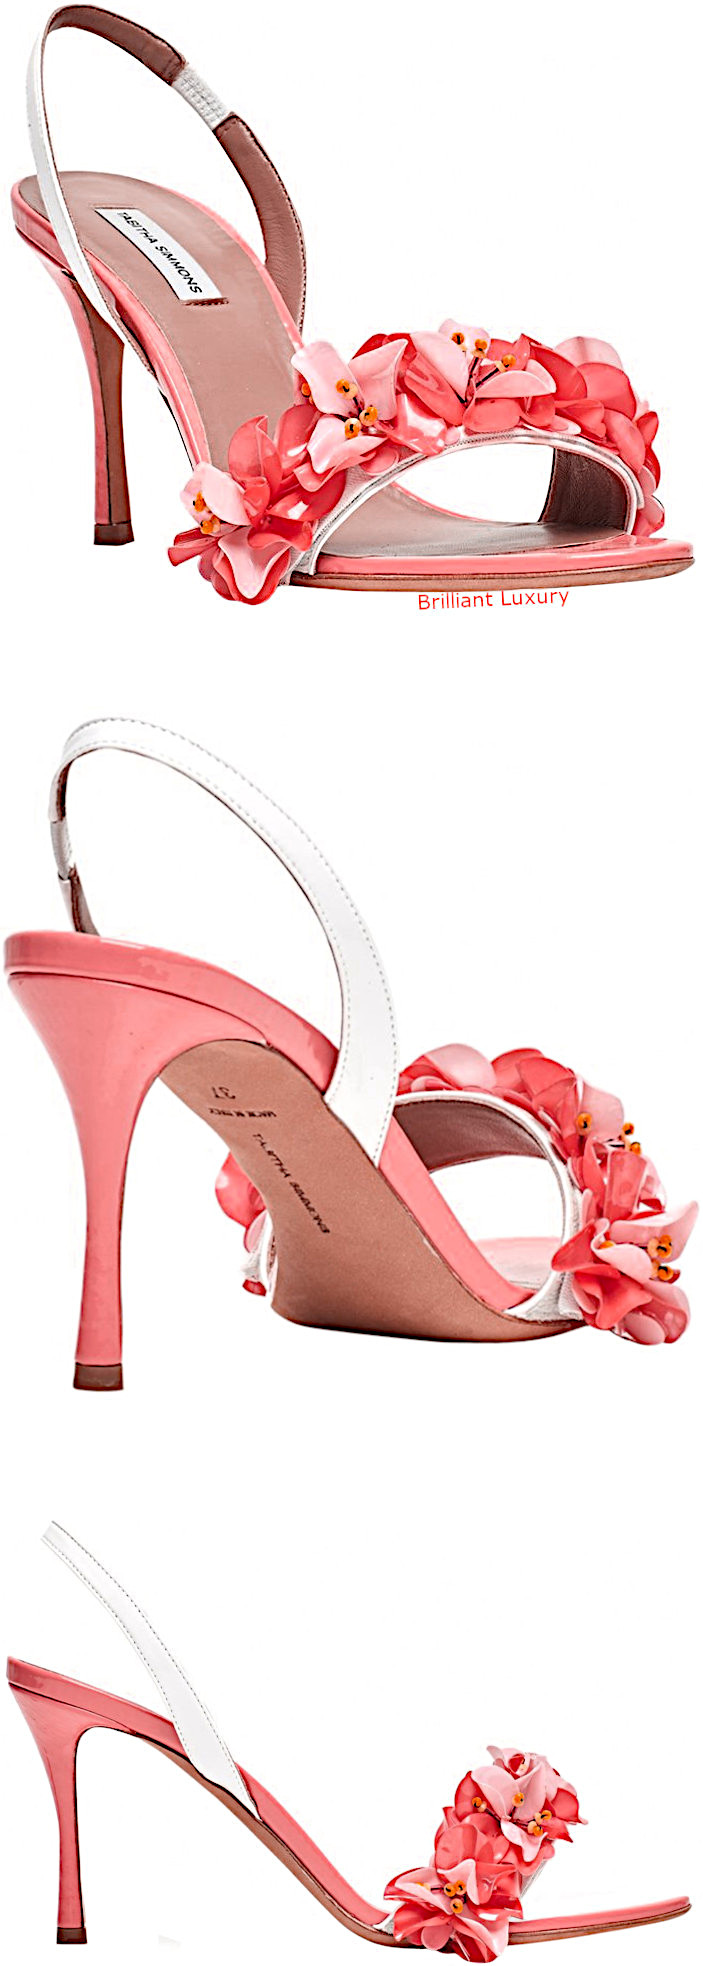 Tabitha Simmons floral sandals in coral